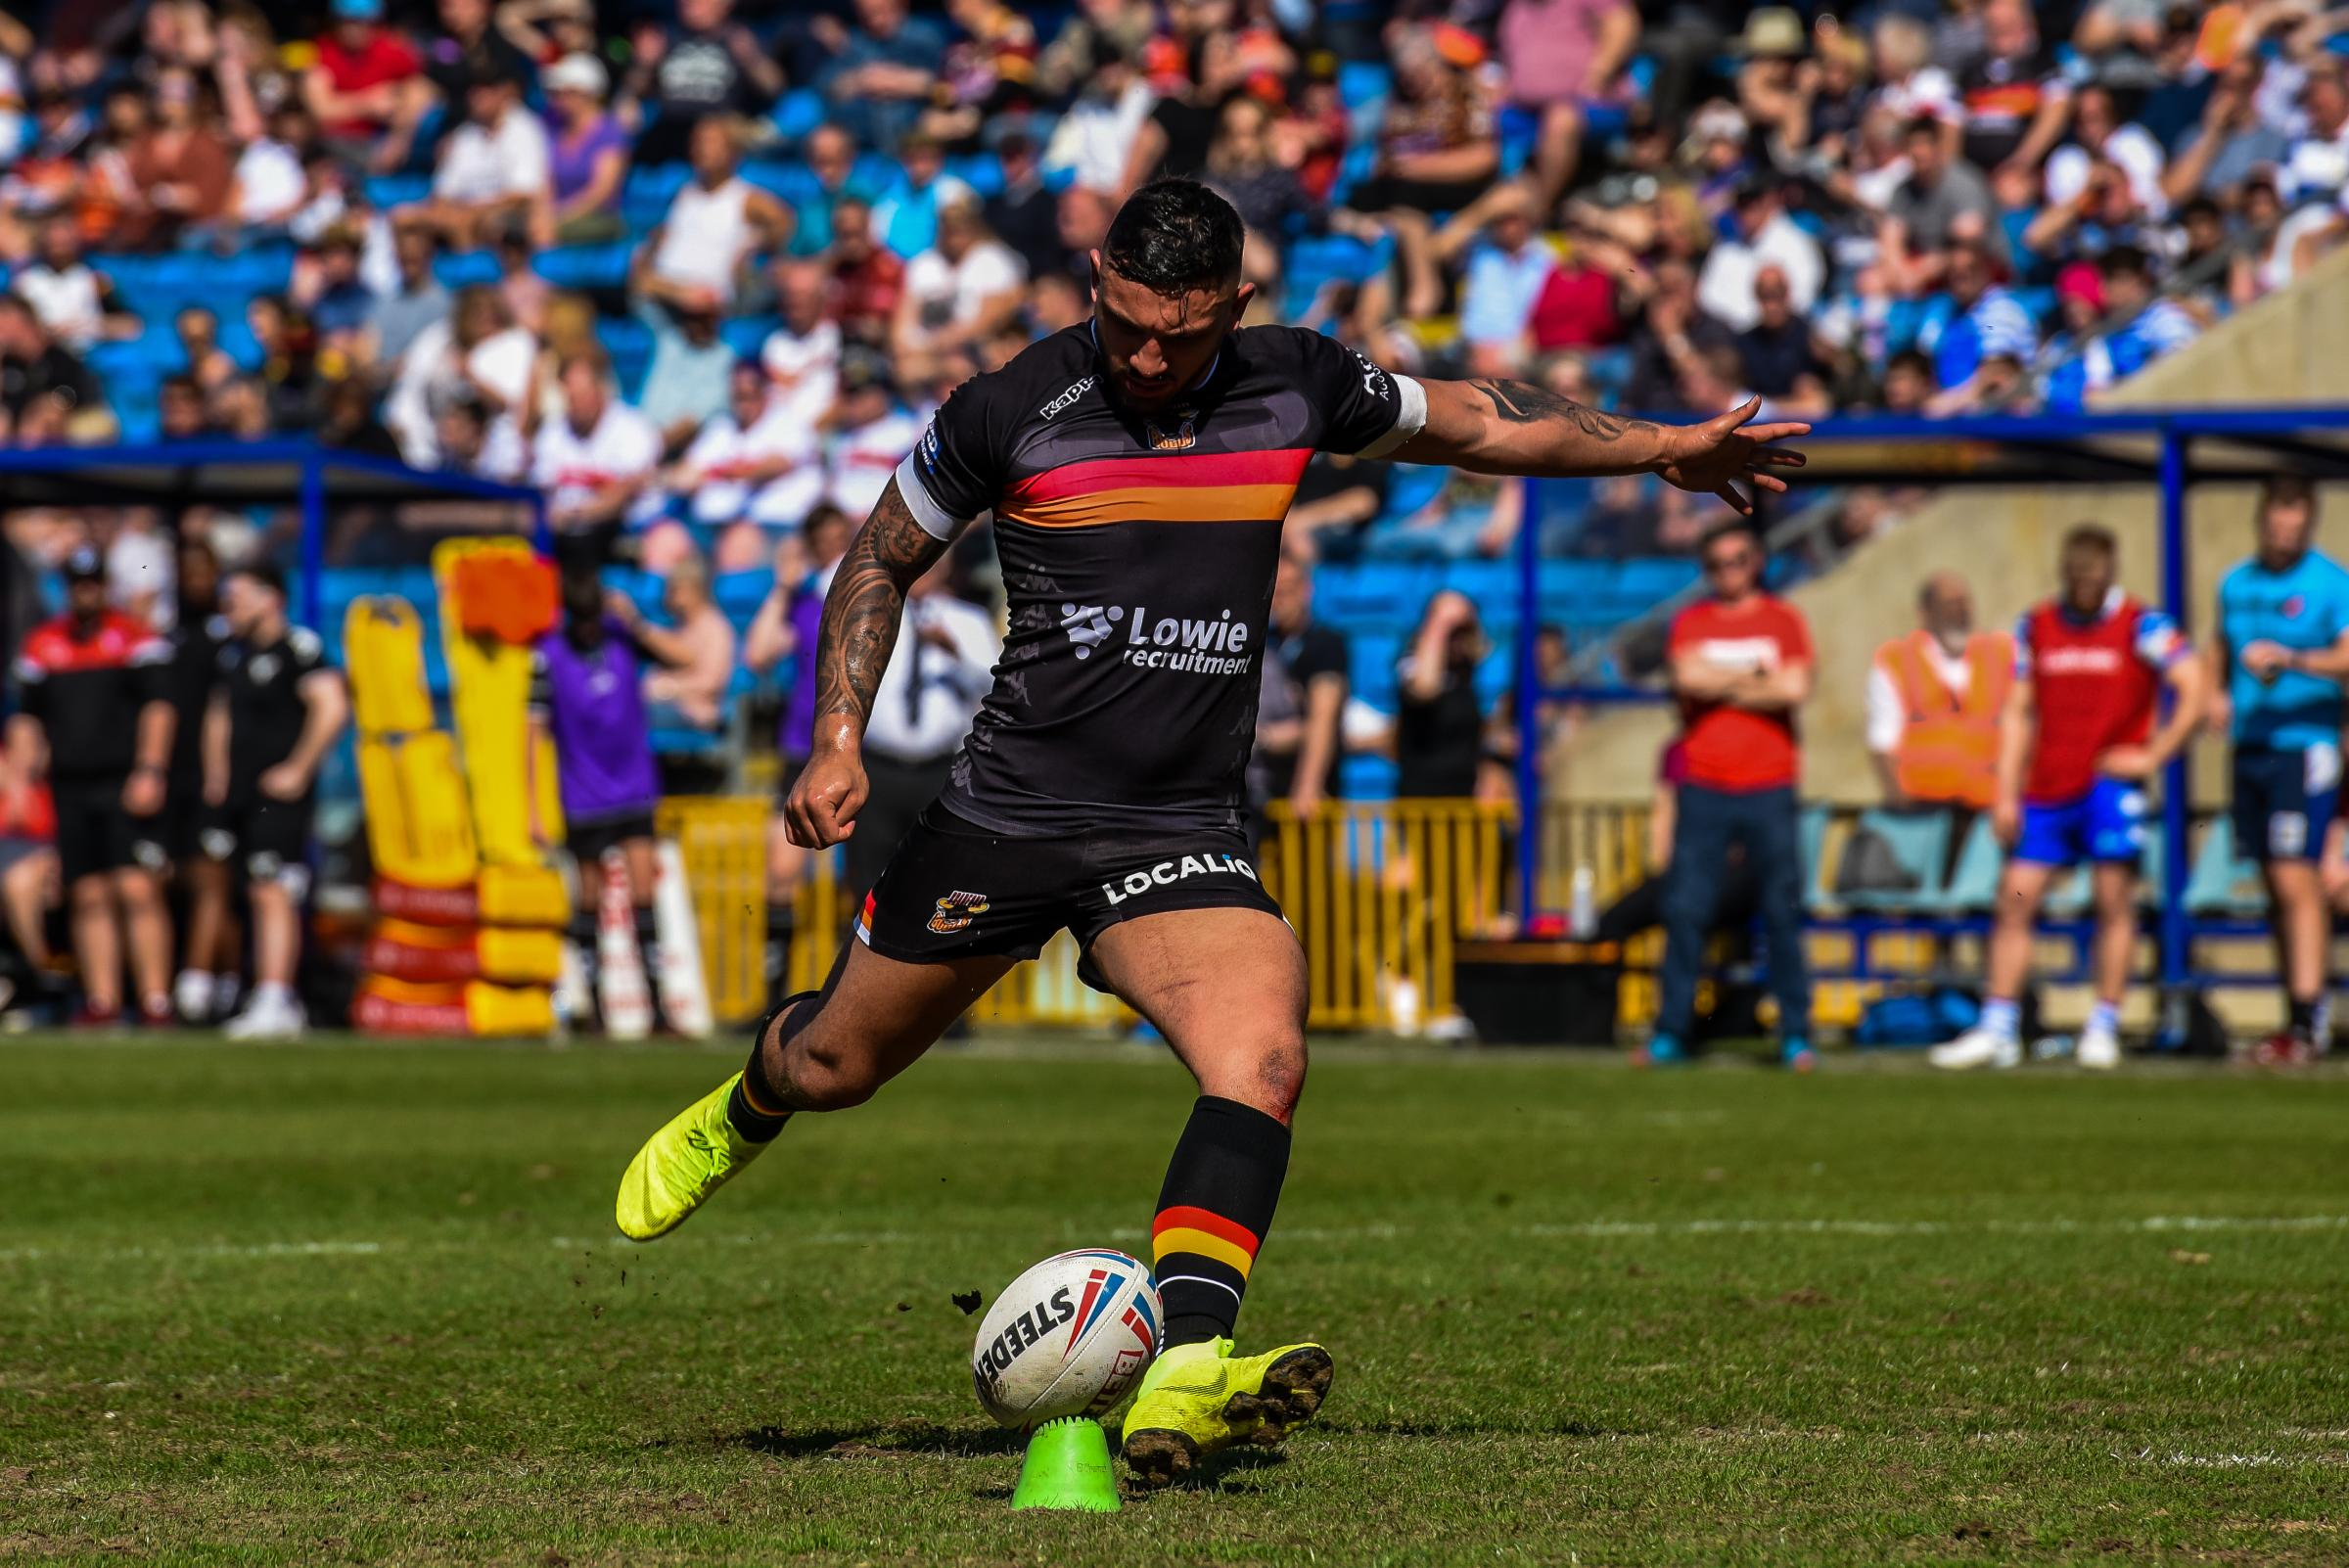 Elliot Minchella scored a try in Bradford Bulls' 33-26 win at Halifax. Picture: Tom Pearson